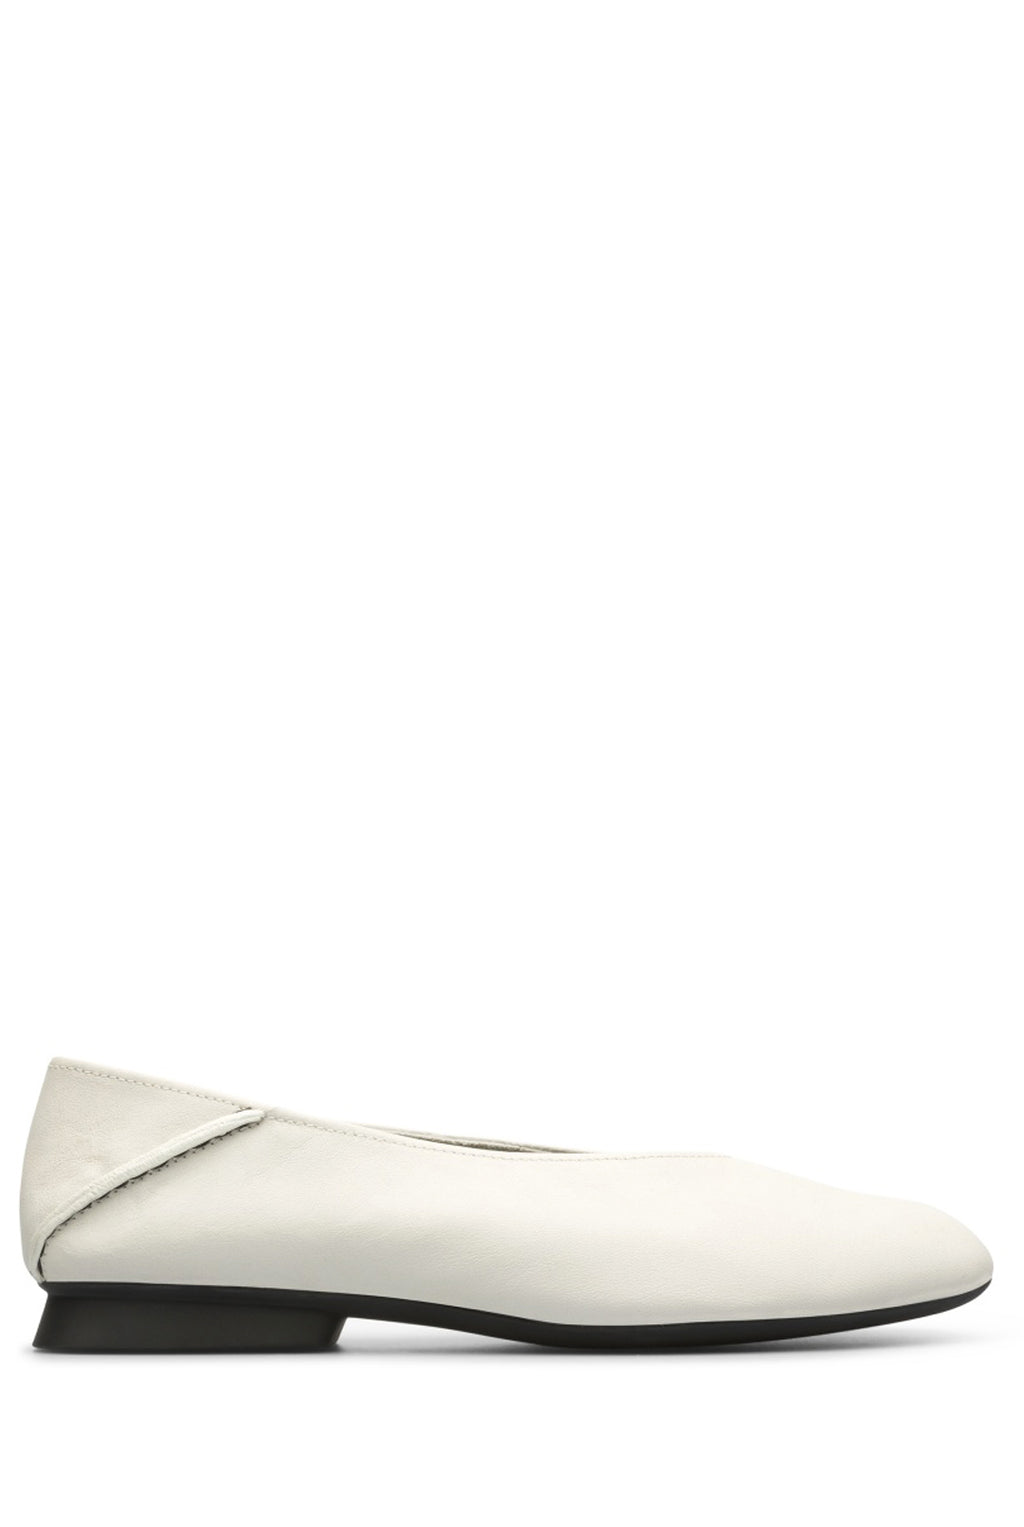 Camper Myra Ballet Shoes, Ivory